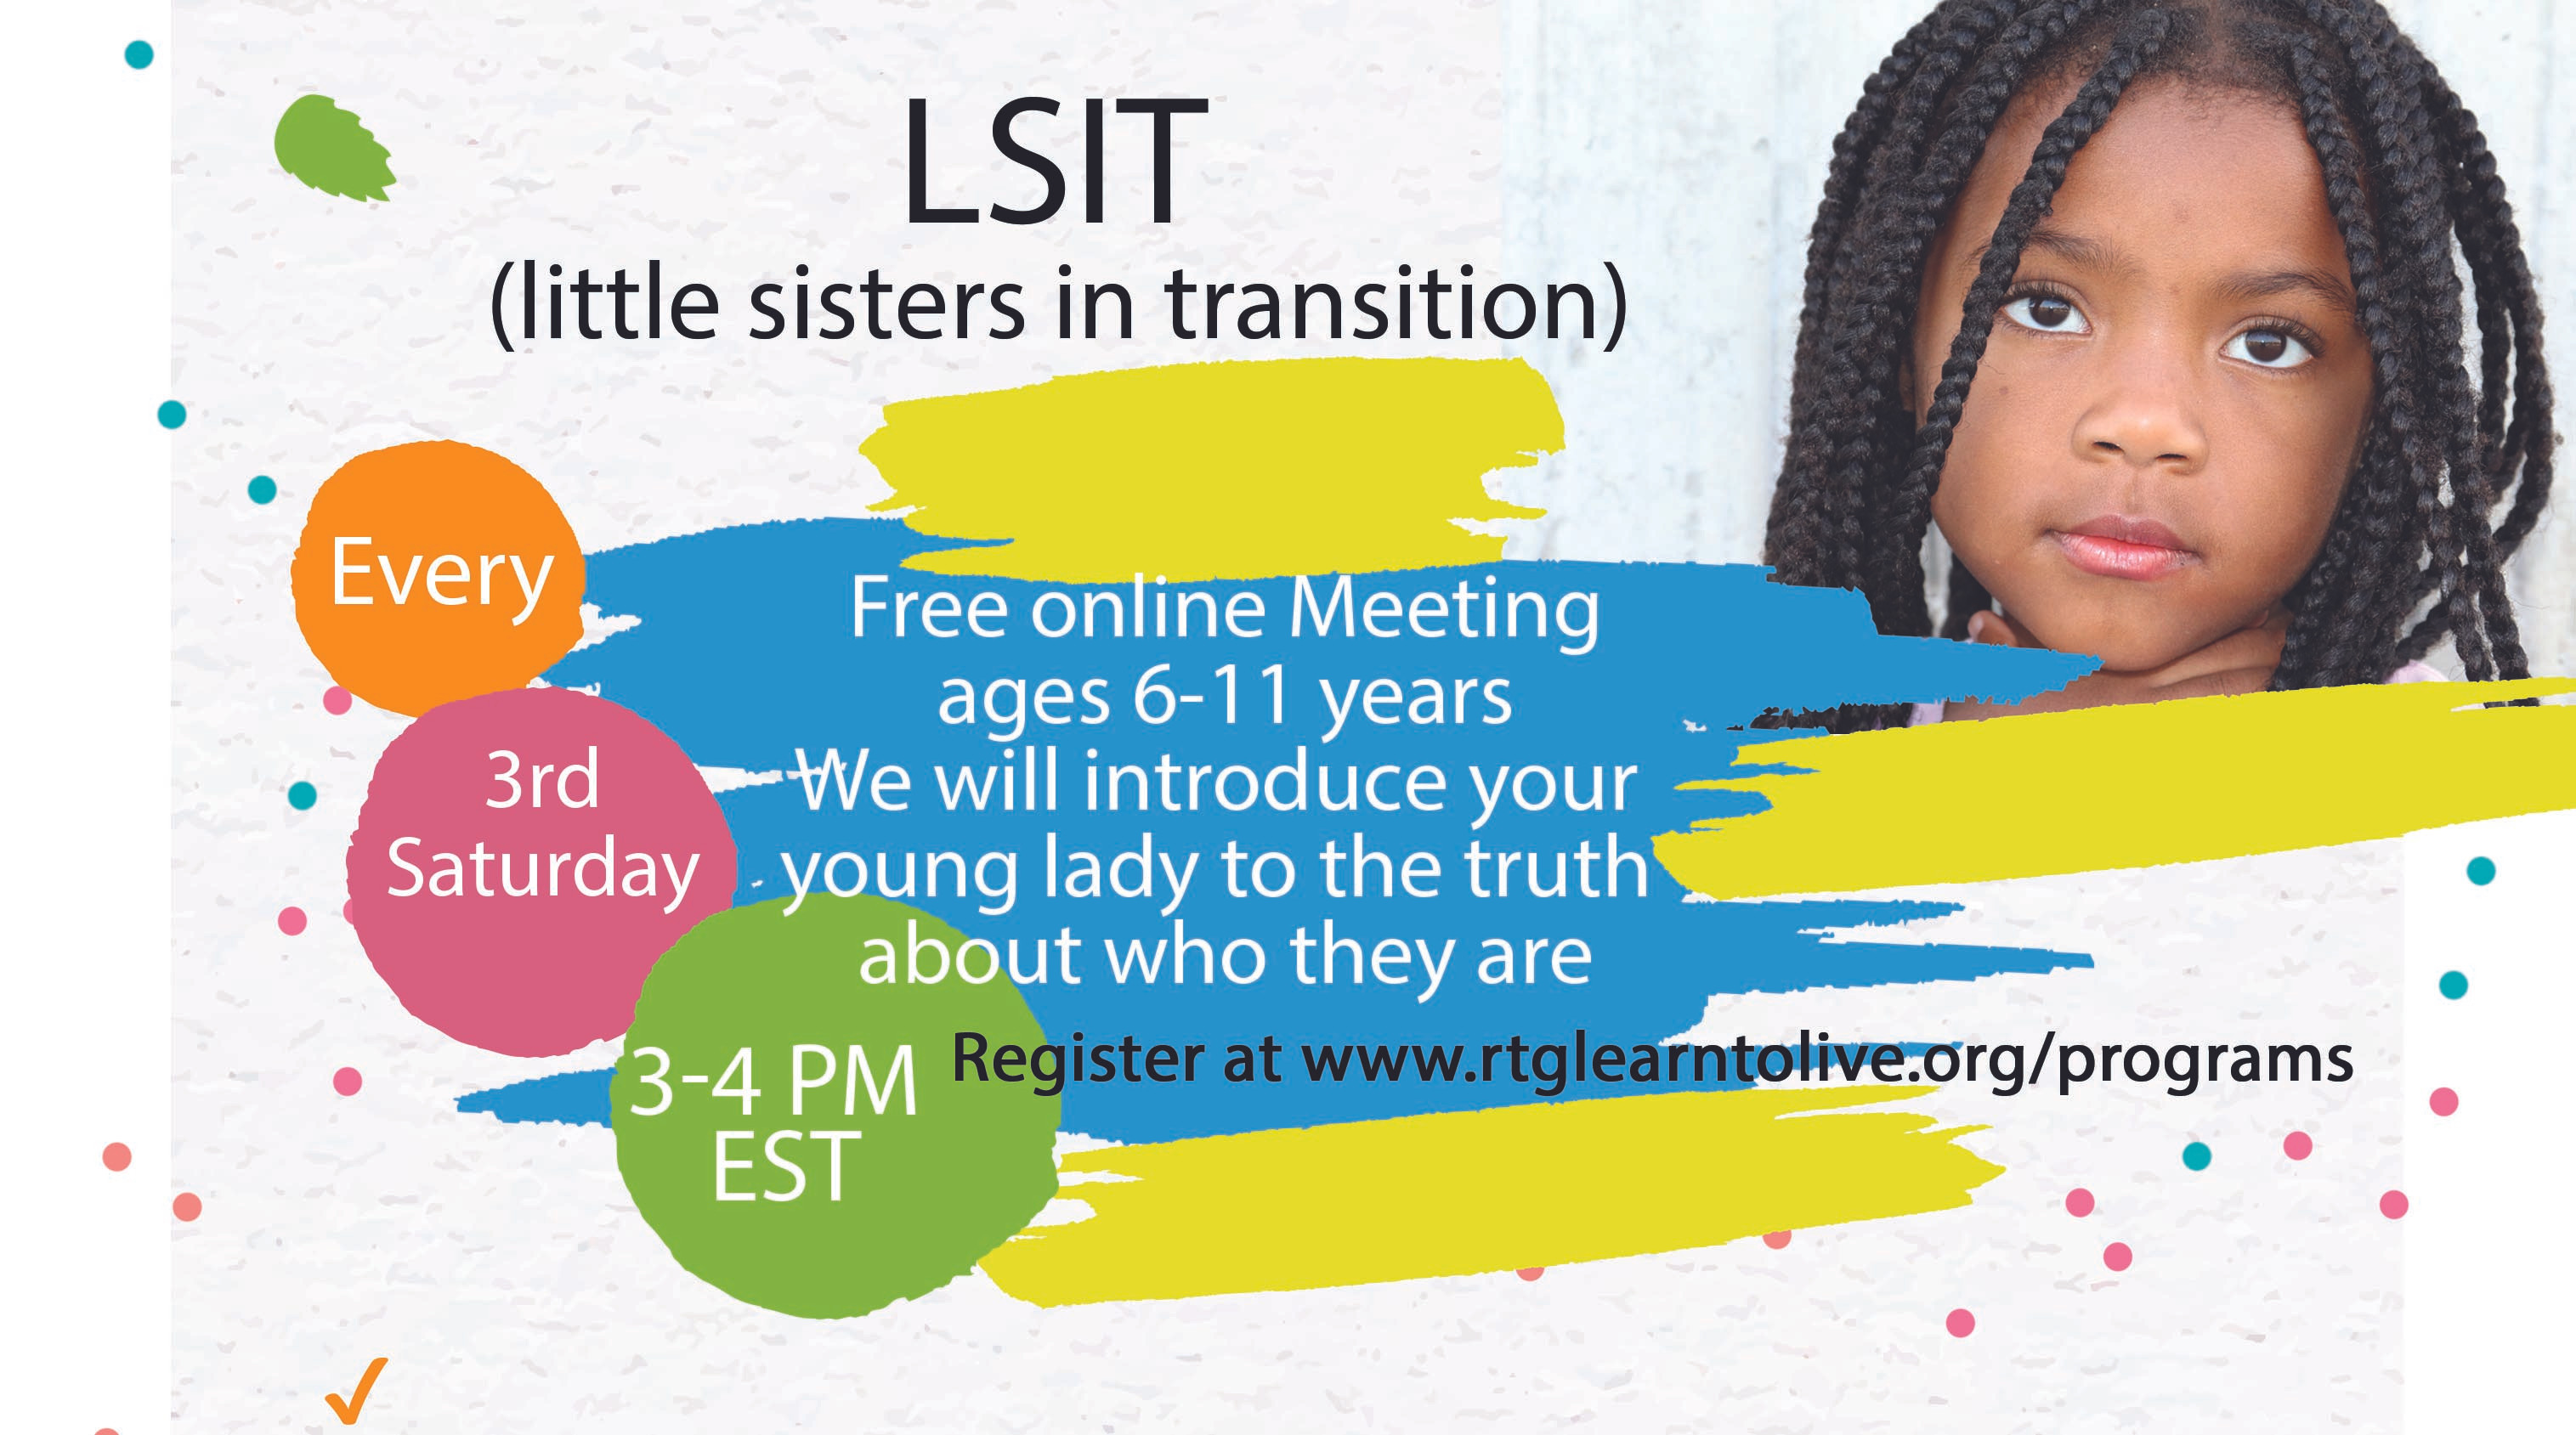 LSIT (little sisters in transition)